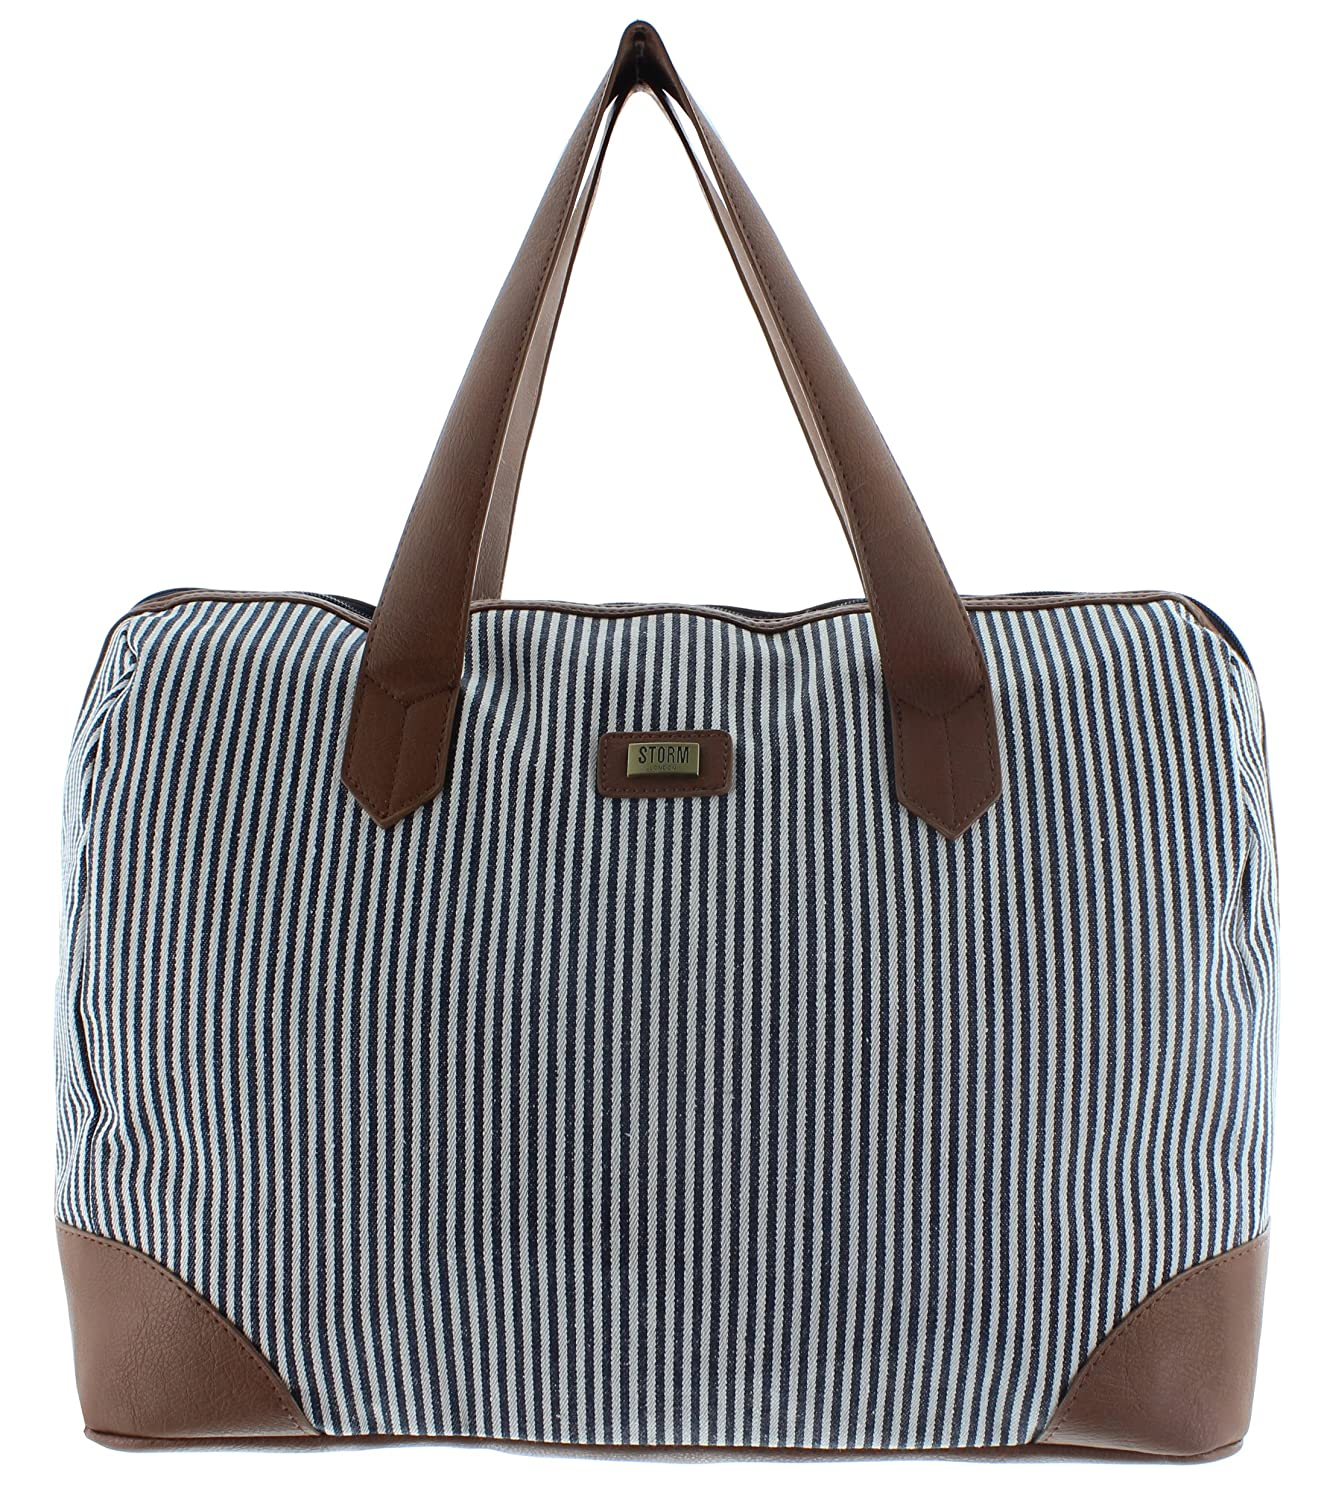 Ladies Geometric Holdalls Weekender Bag Duffel Tote Bag Weekend Travel Bag Handbags with Strips